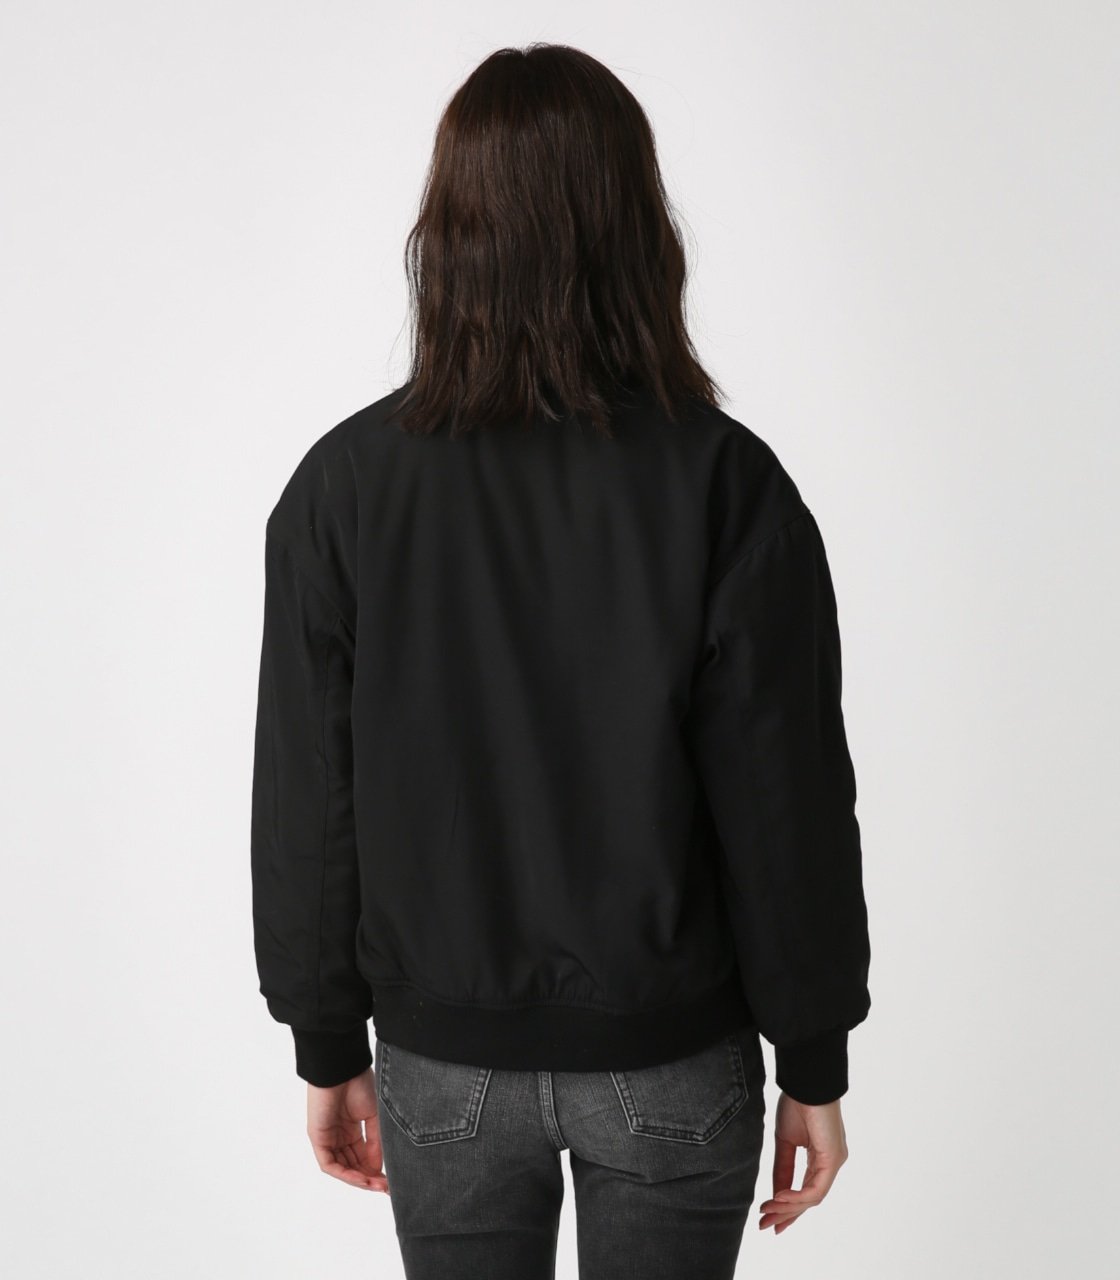 【AZUL BY MOUSSY】リバーシブルボアブルゾン 詳細画像 BLK 7